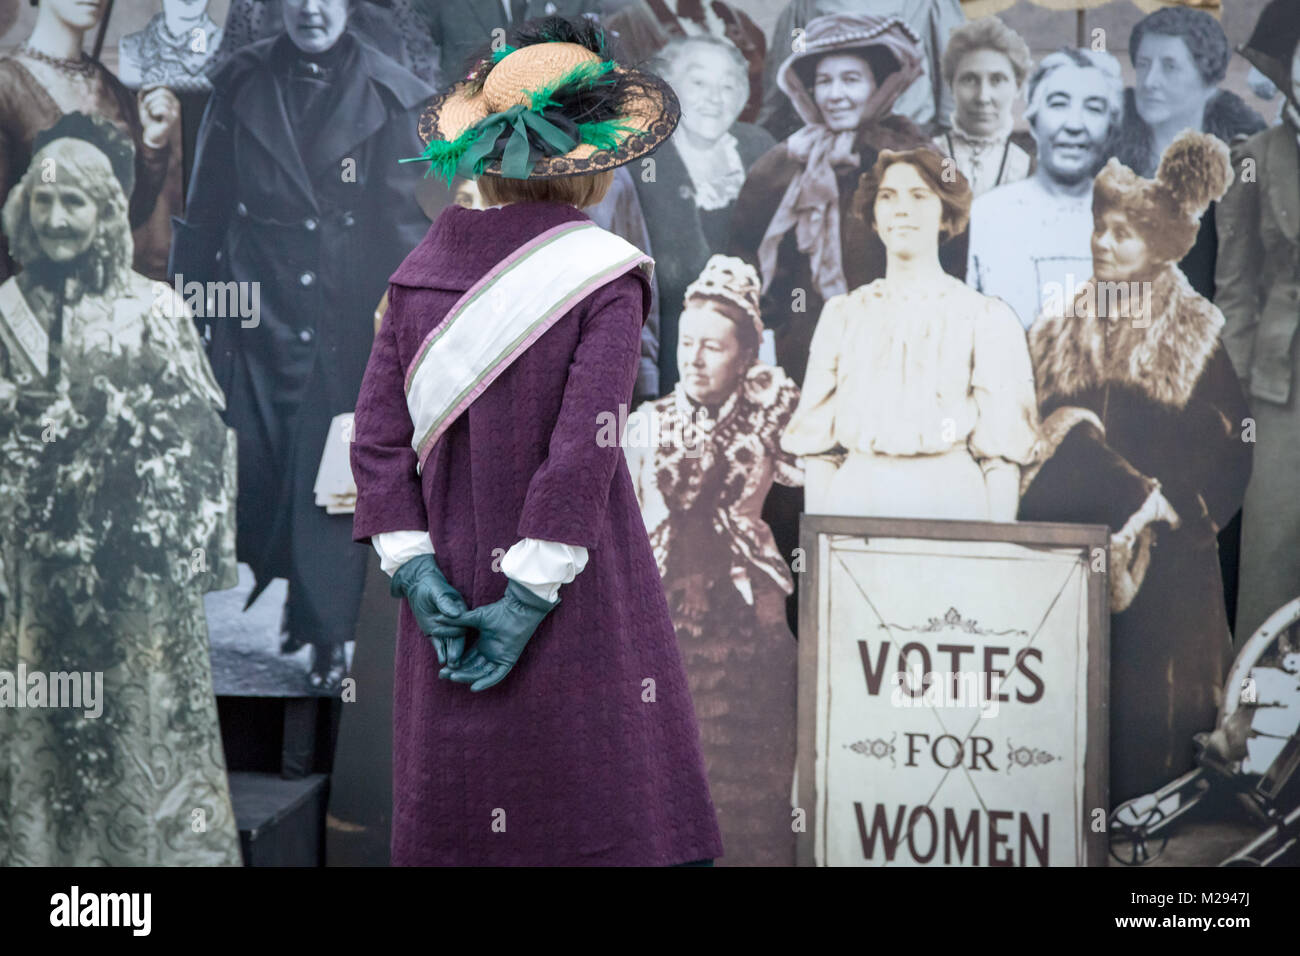 London, UK. 6th Feb, 2018. The Mayor of London including historian Lucy Worsley (pictured) hosts a symbolic exhibition in Trafalgar Square marking 100 years since the 1918 Representation of the People Act was passed - a landmark victory which gave the first women the right to vote. Credit: Guy Corbishley/Alamy Live News Stock Photo